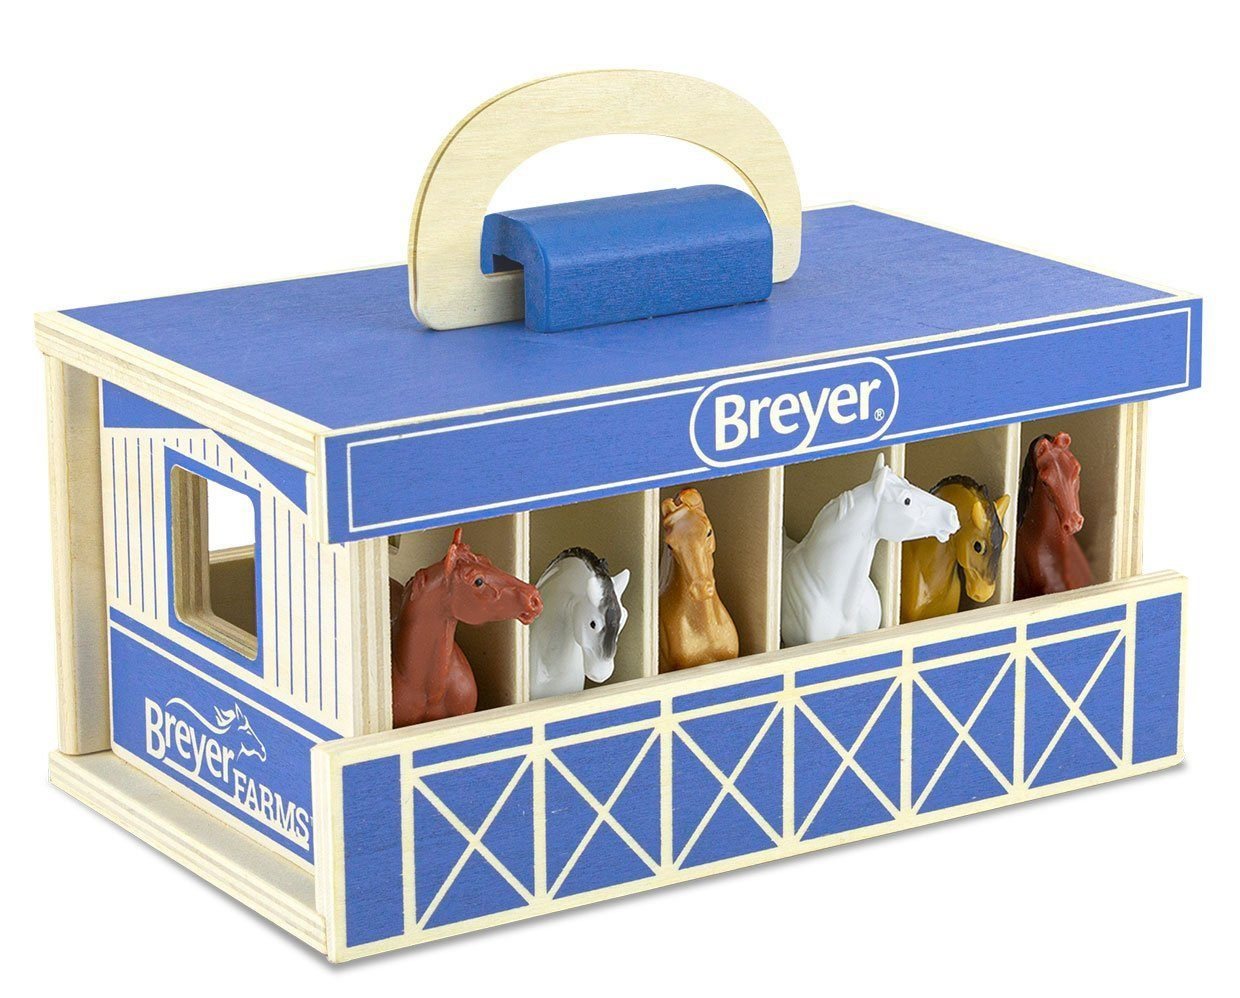 BREYER HORSES #59217 Stablemates Wooden Carry Case NEW!